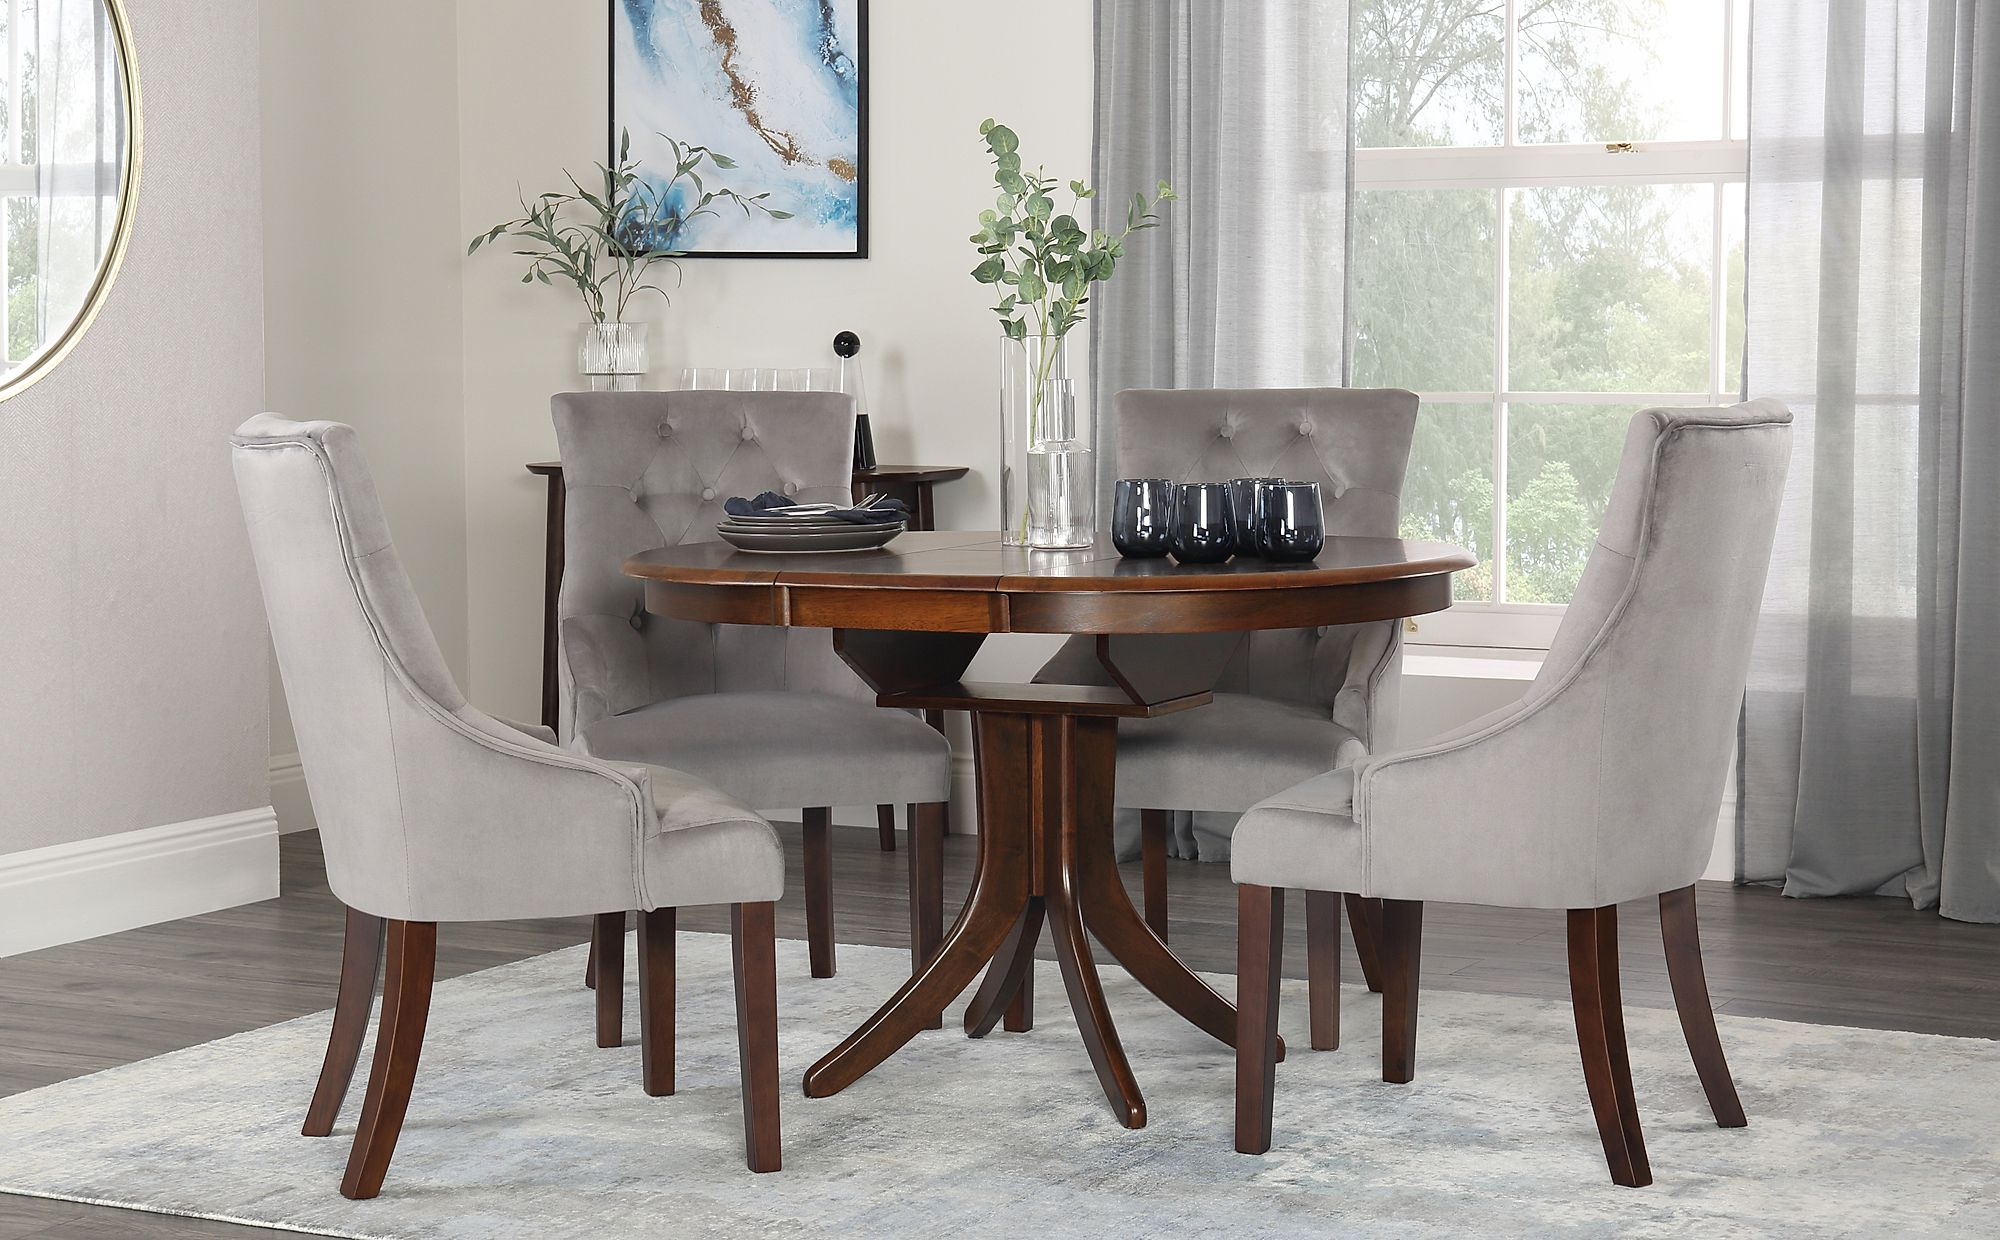 Hudson Round Dark Wood Extending Dining Table with 4 Duke ...